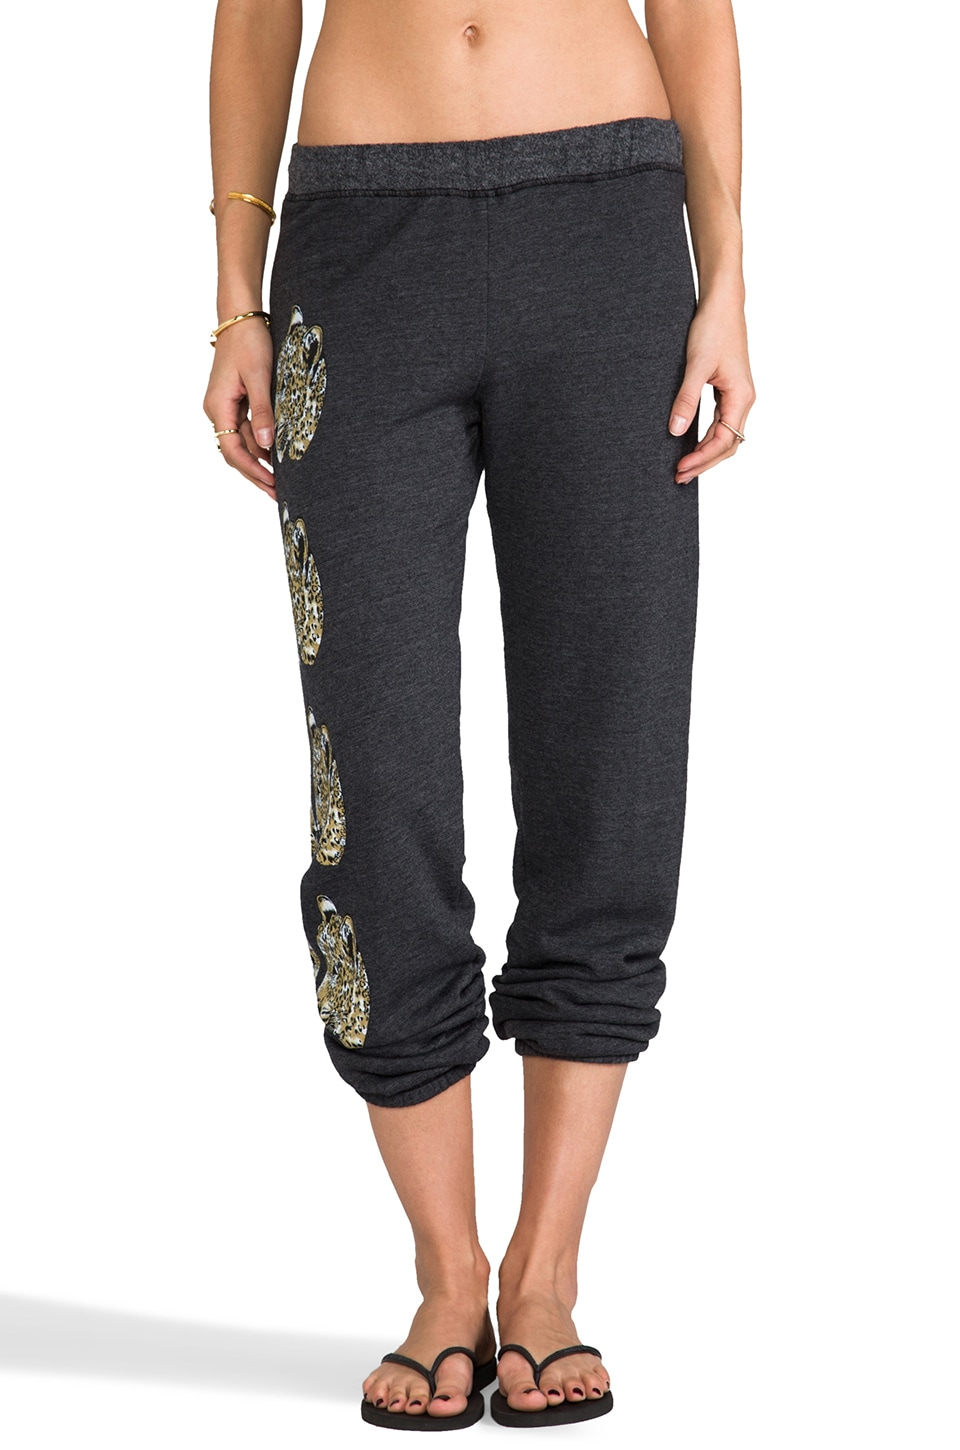 Lauren Moshi Gia Color Mirror Leopards Leg Sweatpants in Black